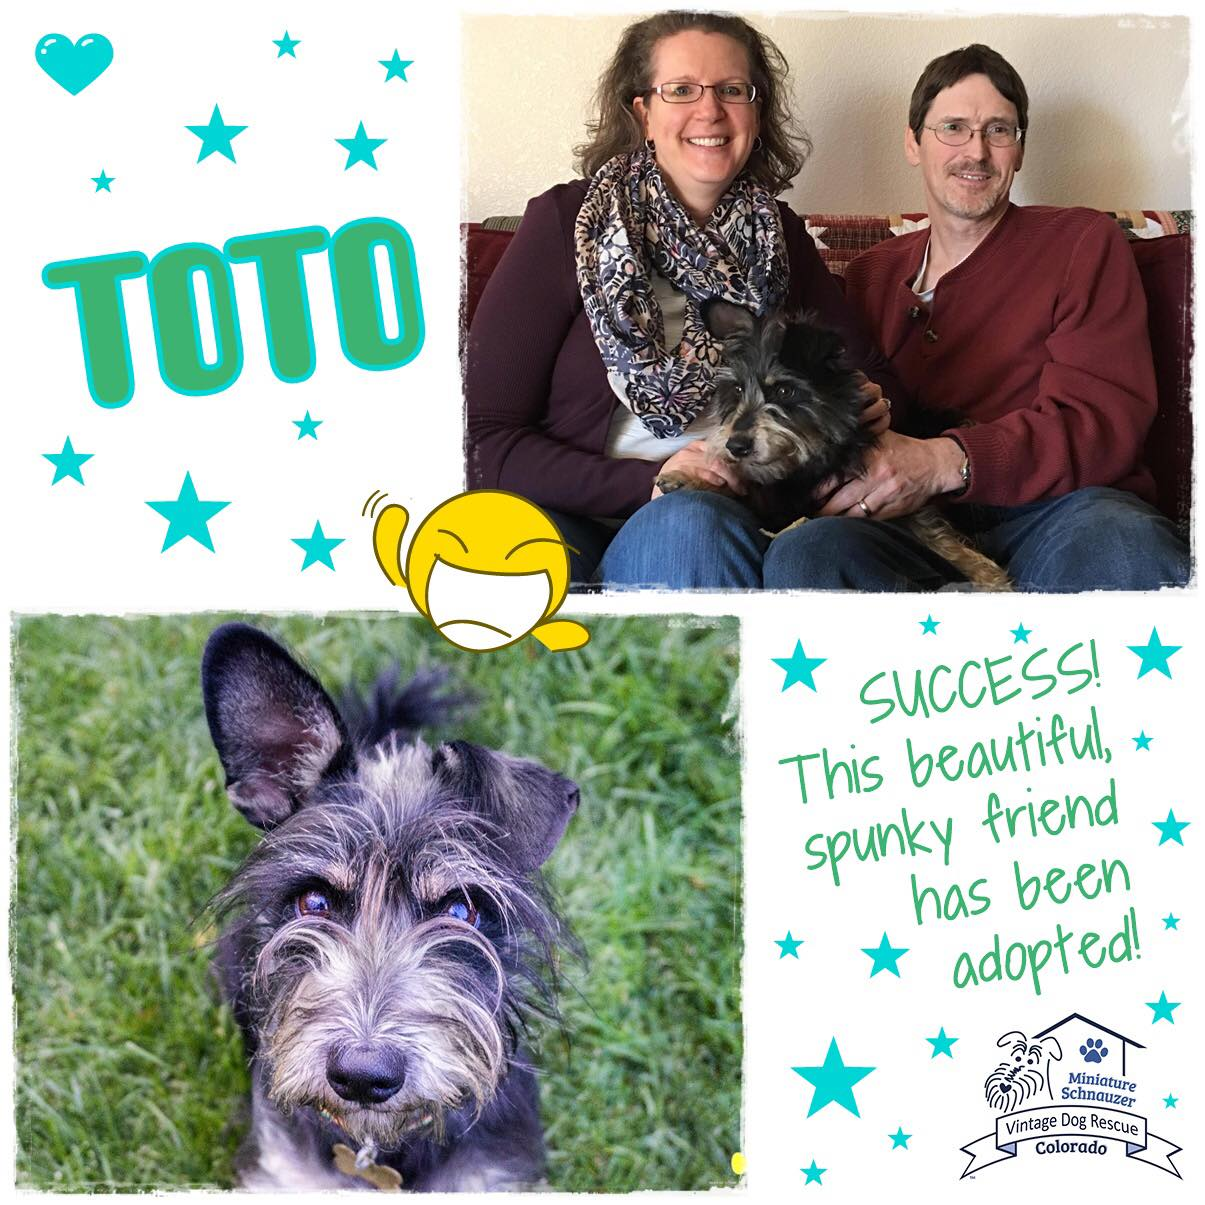 Toto was adopted!